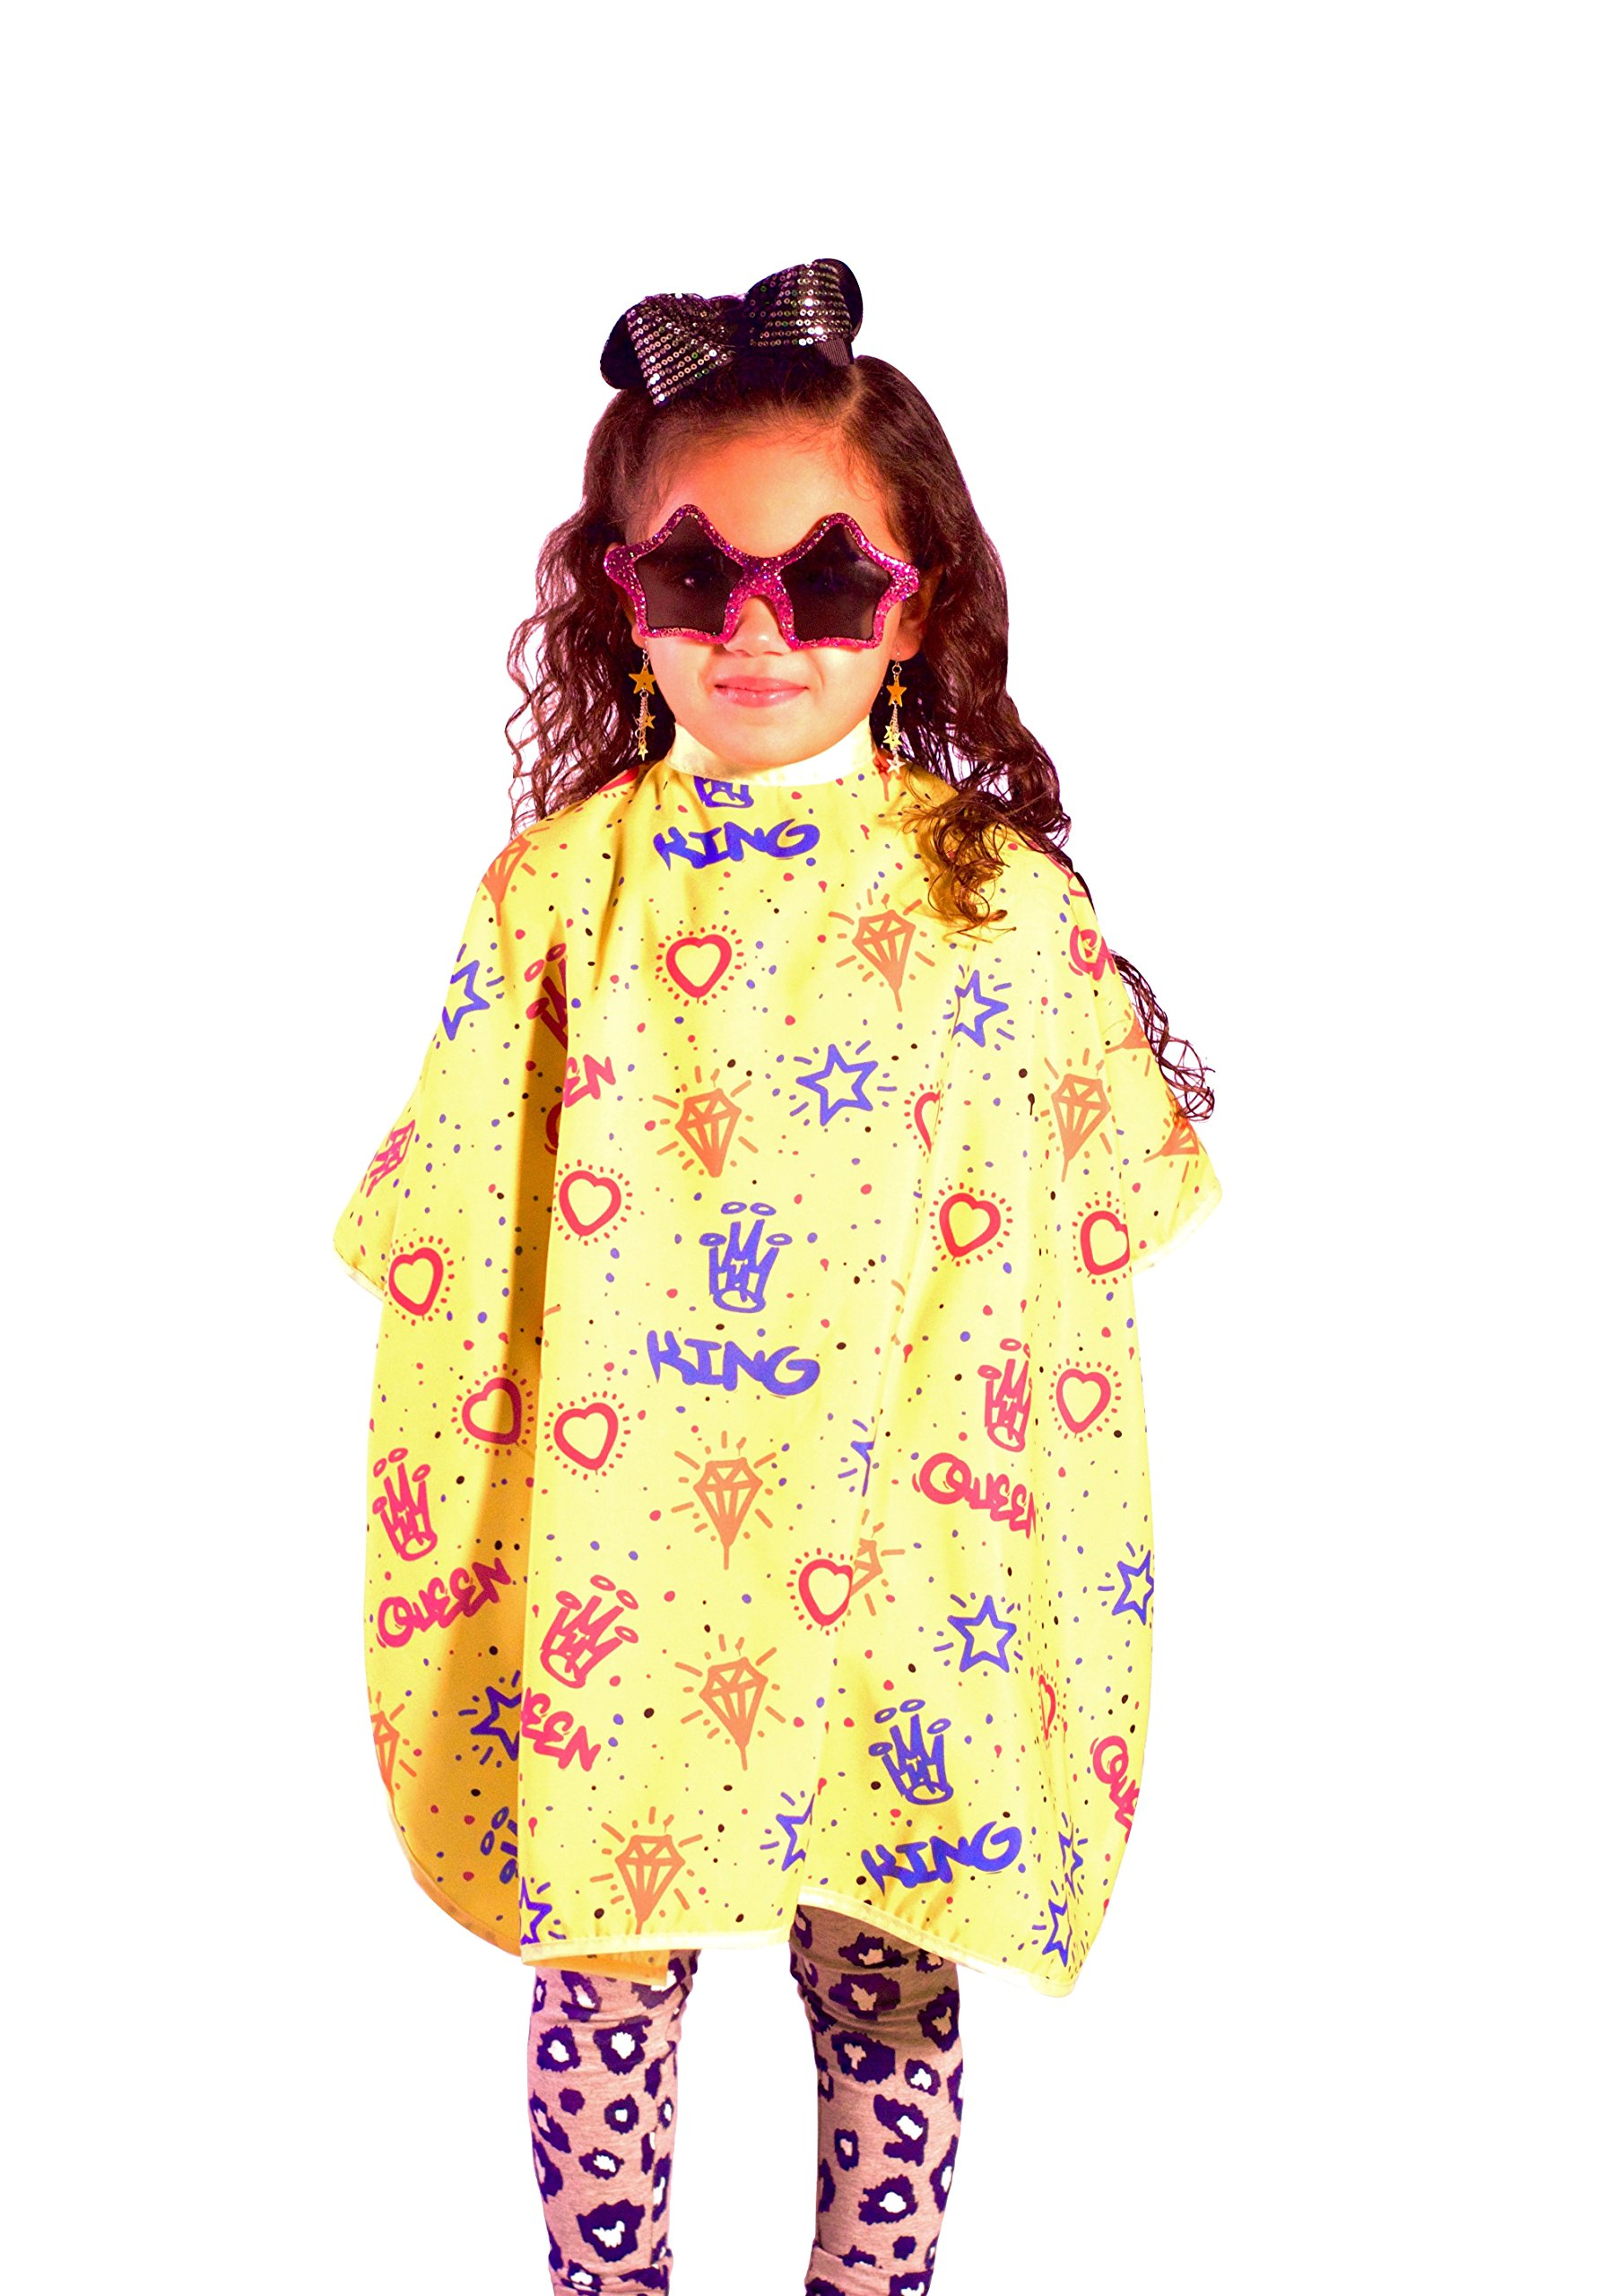 King Midas Professional Kids Hair Cutting Cape''Kiddie Graffiti'' Children's Barber Cape With Snap Button Closure-Super Cool With Extra Length (Yellow)